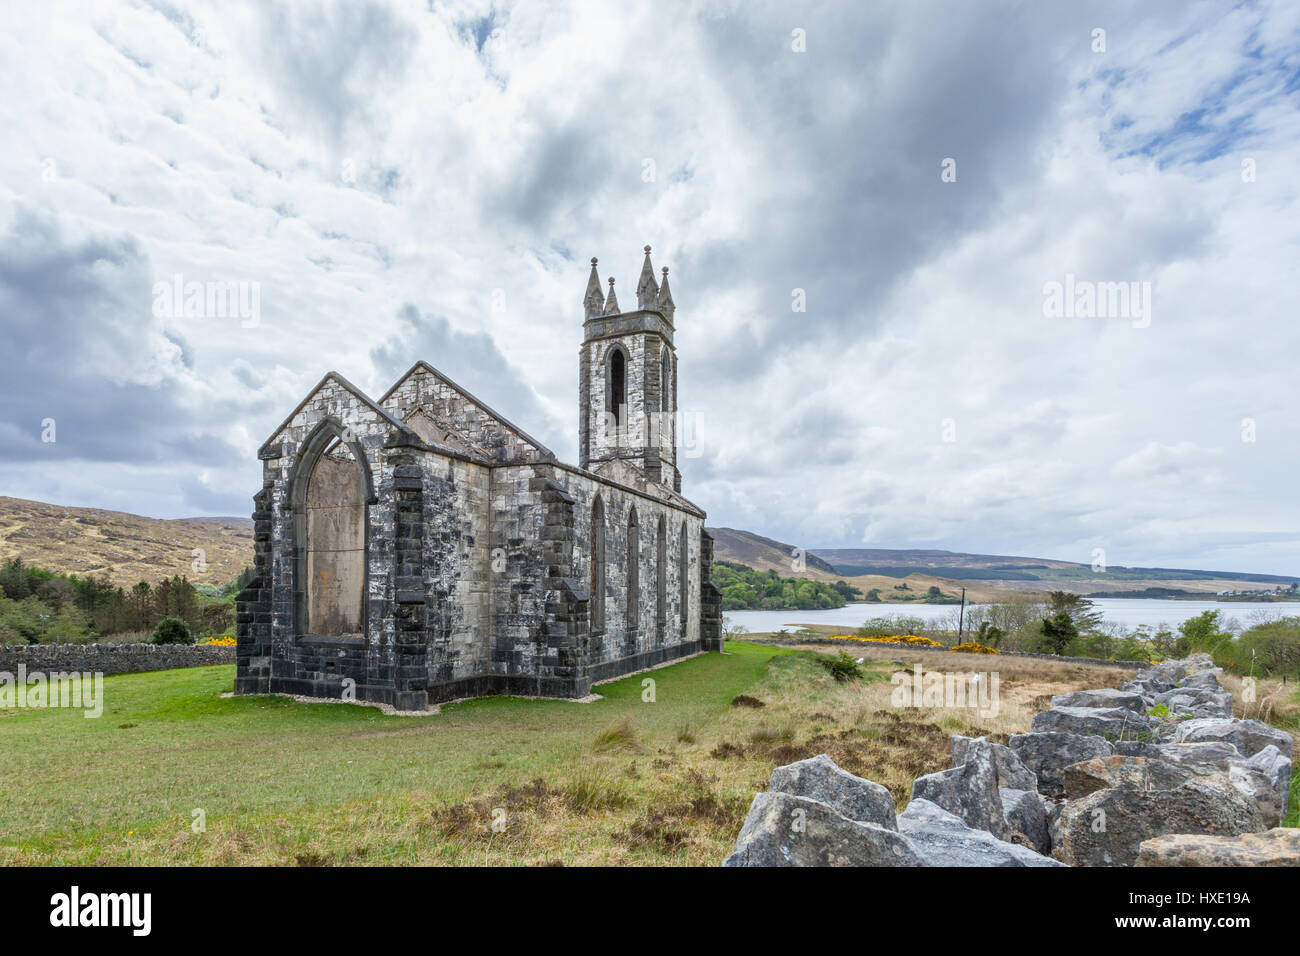 Ruins of the Old Church of Dunlewey in County Donegal, Ireland - Stock Image